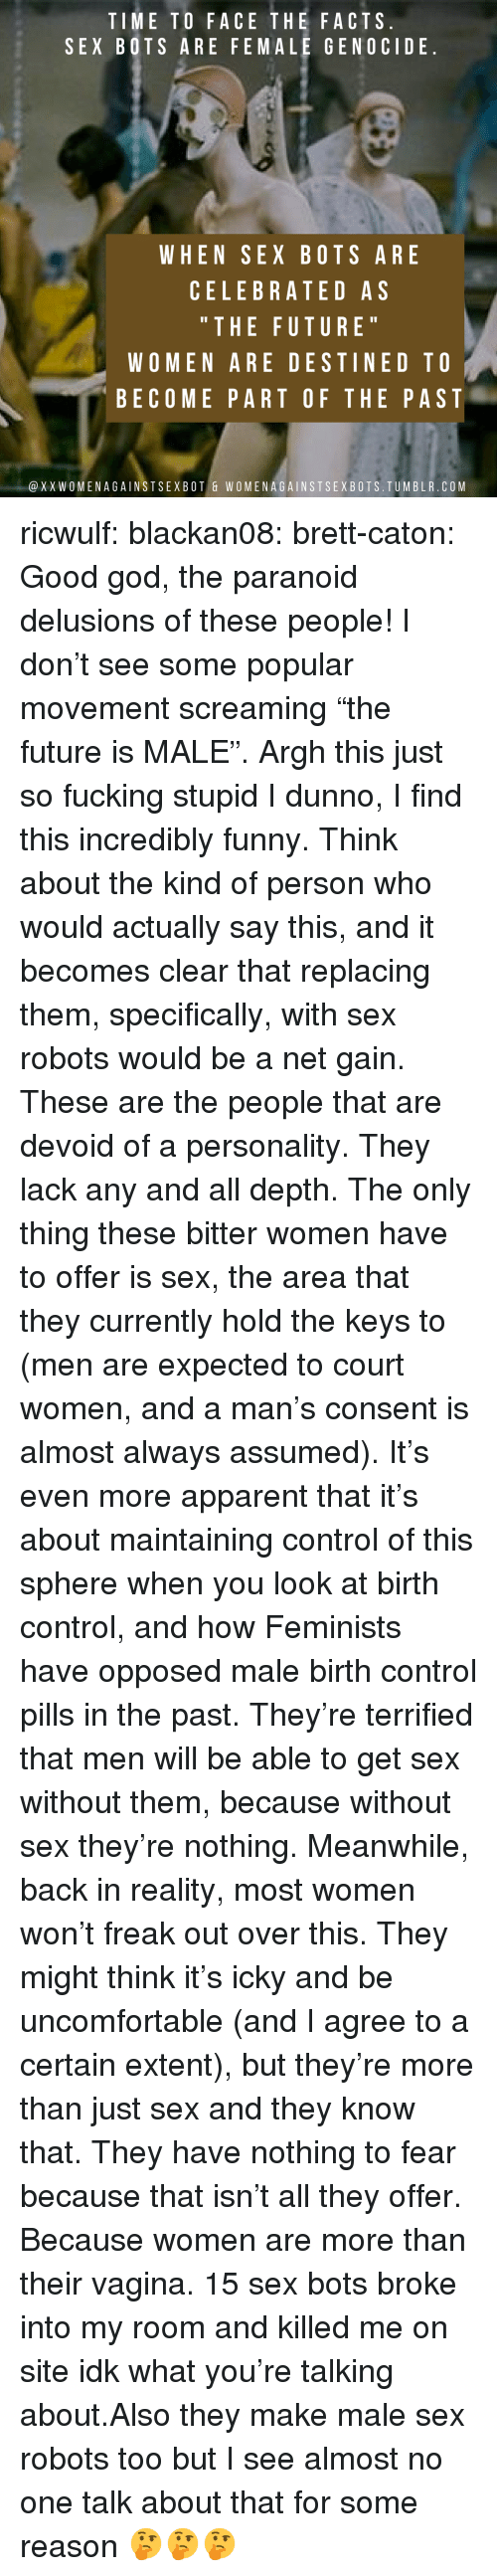 """Facts, Funny, and Future: TIME TO FACE THE FACTS  SEX BOTS ARE FEMALE GENOCIDE  WHEN SEX BOTS ARE  CELEBRATED AS  """" THE FUTURE  WOMEN ARE DESTINED TO  BECOME PART OF THE PAST  @XXWOMENAGAINSTSEXBOT & WOMENAGAINSTSEXBOTS.TUMBLR.COM ricwulf:  blackan08:   brett-caton: Good god, the paranoid delusions of these people! I don't see some popular movement screaming """"the future is MALE"""". Argh this just so fucking stupid   I dunno, I find this incredibly funny. Think about the kind of person who would actually say this, and it becomes clear that replacing them, specifically, with sex robots would be a net gain. These are the people that are devoid of a personality. They lack any and all depth. The only thing these bitter women have to offer is sex, the area that they currently hold the keys to (men are expected to court women, and a man's consent is almost always assumed). It's even more apparent that it's about maintaining control of this sphere when you look at birth control, and how Feminists have opposed male birth control pills in the past.  They're terrified that men will be able to get sex without them, because without sex they're nothing. Meanwhile, back in reality, most women won't freak out over this. They might think it's icky and be uncomfortable (and I agree to a certain extent), but they're more than just sex and they know that. They have nothing to fear because that isn't all they offer. Because women are more than their vagina.   15 sex bots broke into my room and killed me on site idk what you're talking about.Also they make male sex robots too but I see almost no one talk about that for some reason 🤔🤔🤔"""